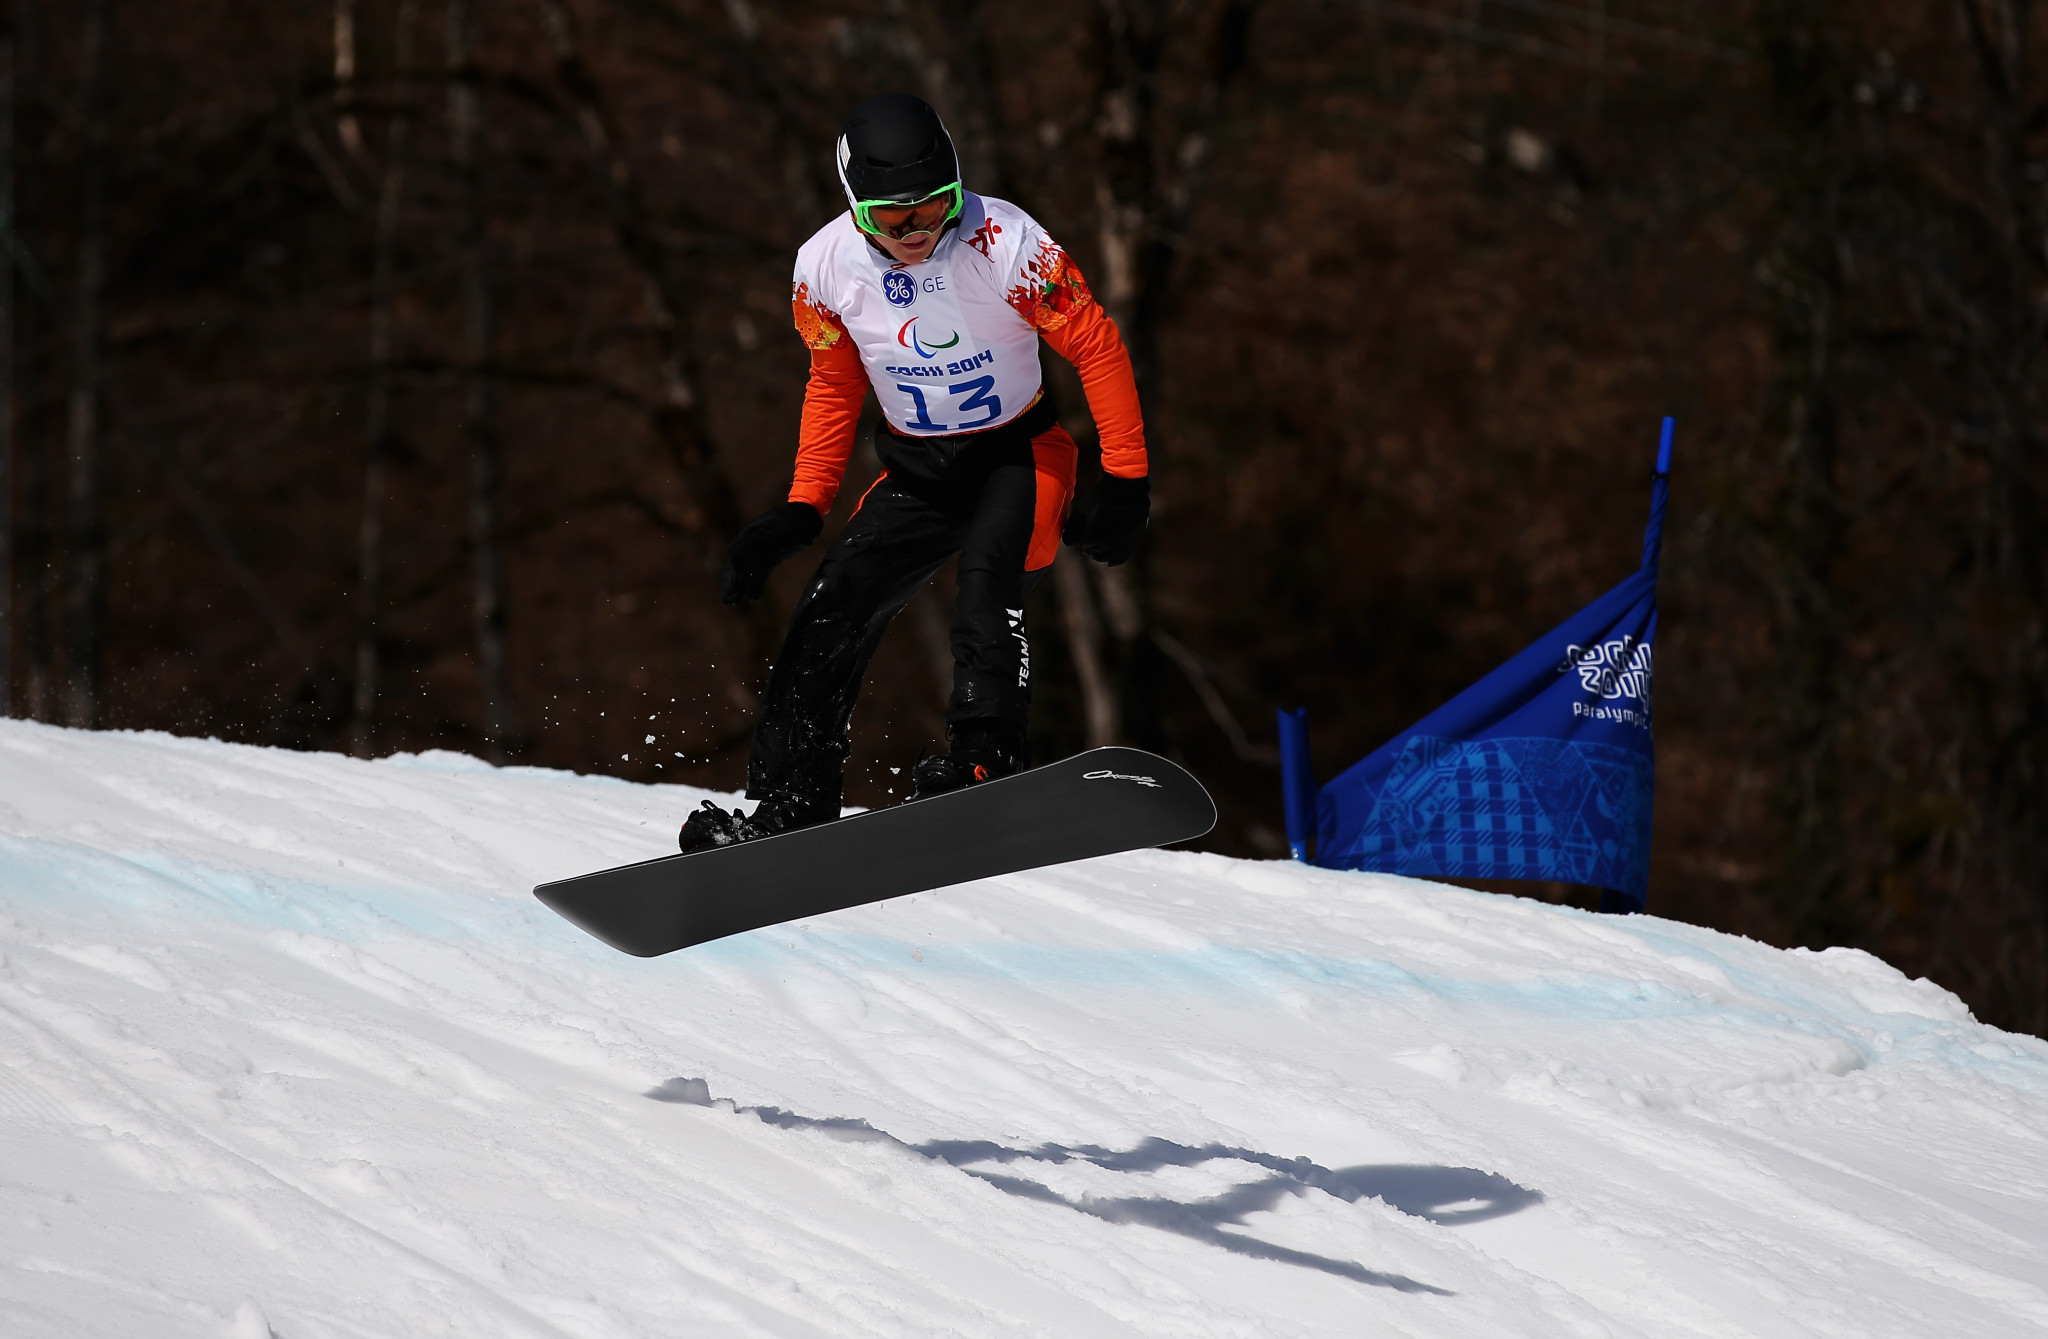 Dutch stars chase home wins at World Para Snowboard World Cup